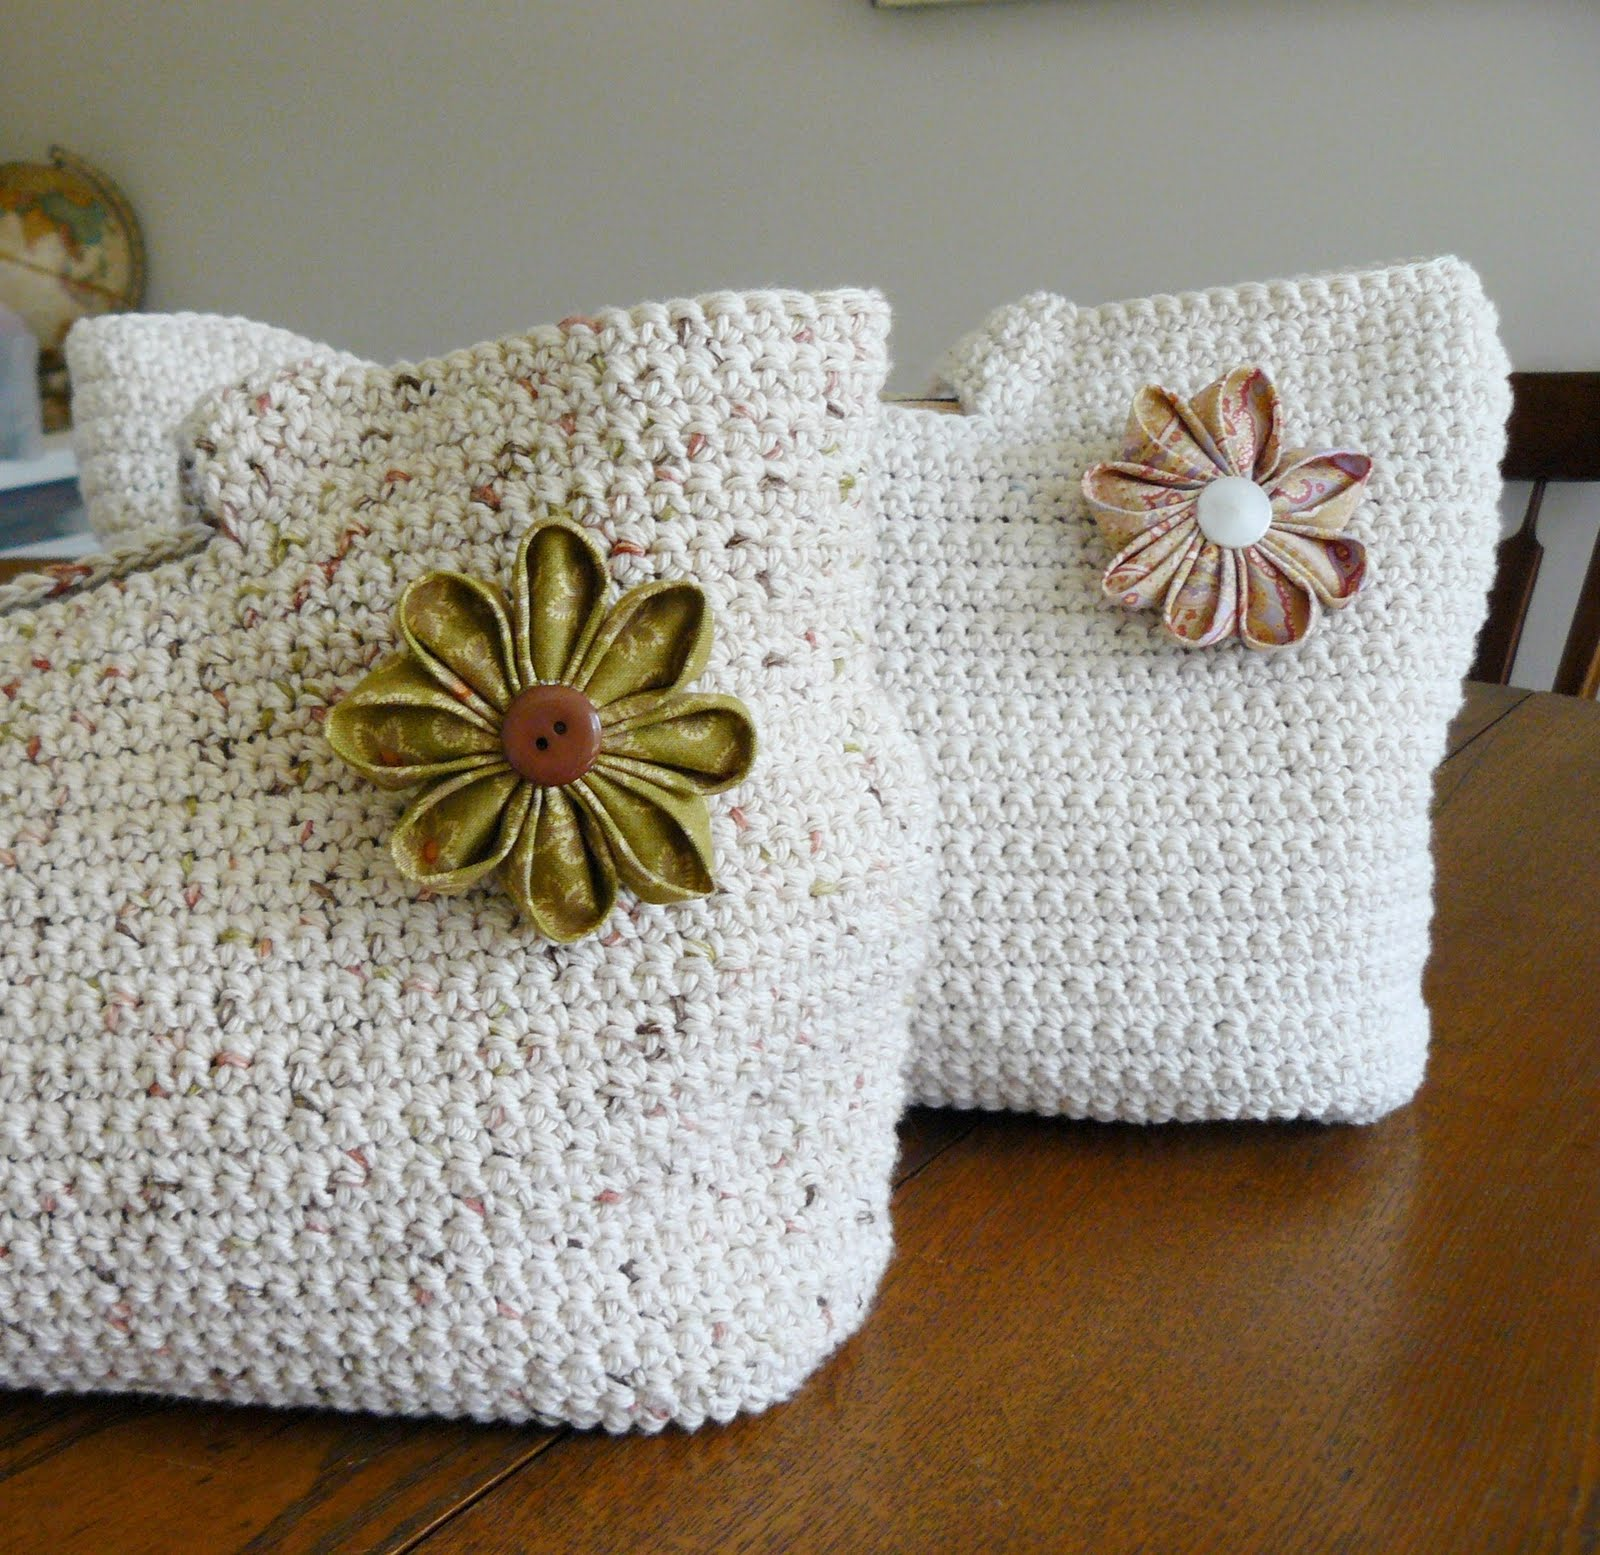 Crochet Patterns For Mother s Day : The Woven Home: Crochet Projects: Mothers Day Totes